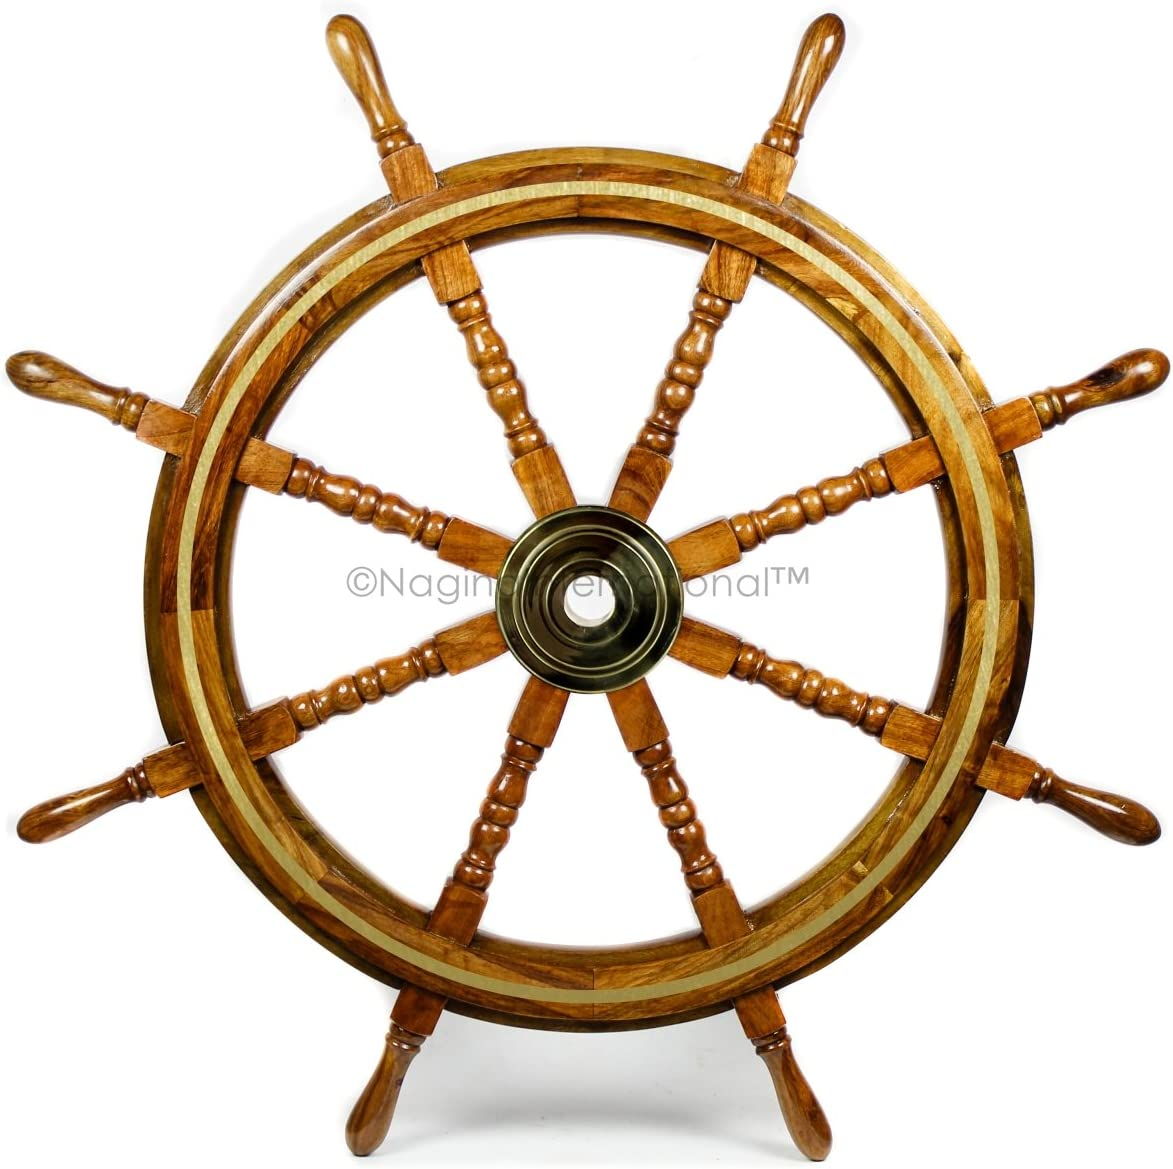 Nagina International Wooden Nautical Captain s Steering Ship Wheel with Brass Ring Hub – Pirate Home Ocean Beach Decor Gift – Nursery Wall Hangings 36 Inches